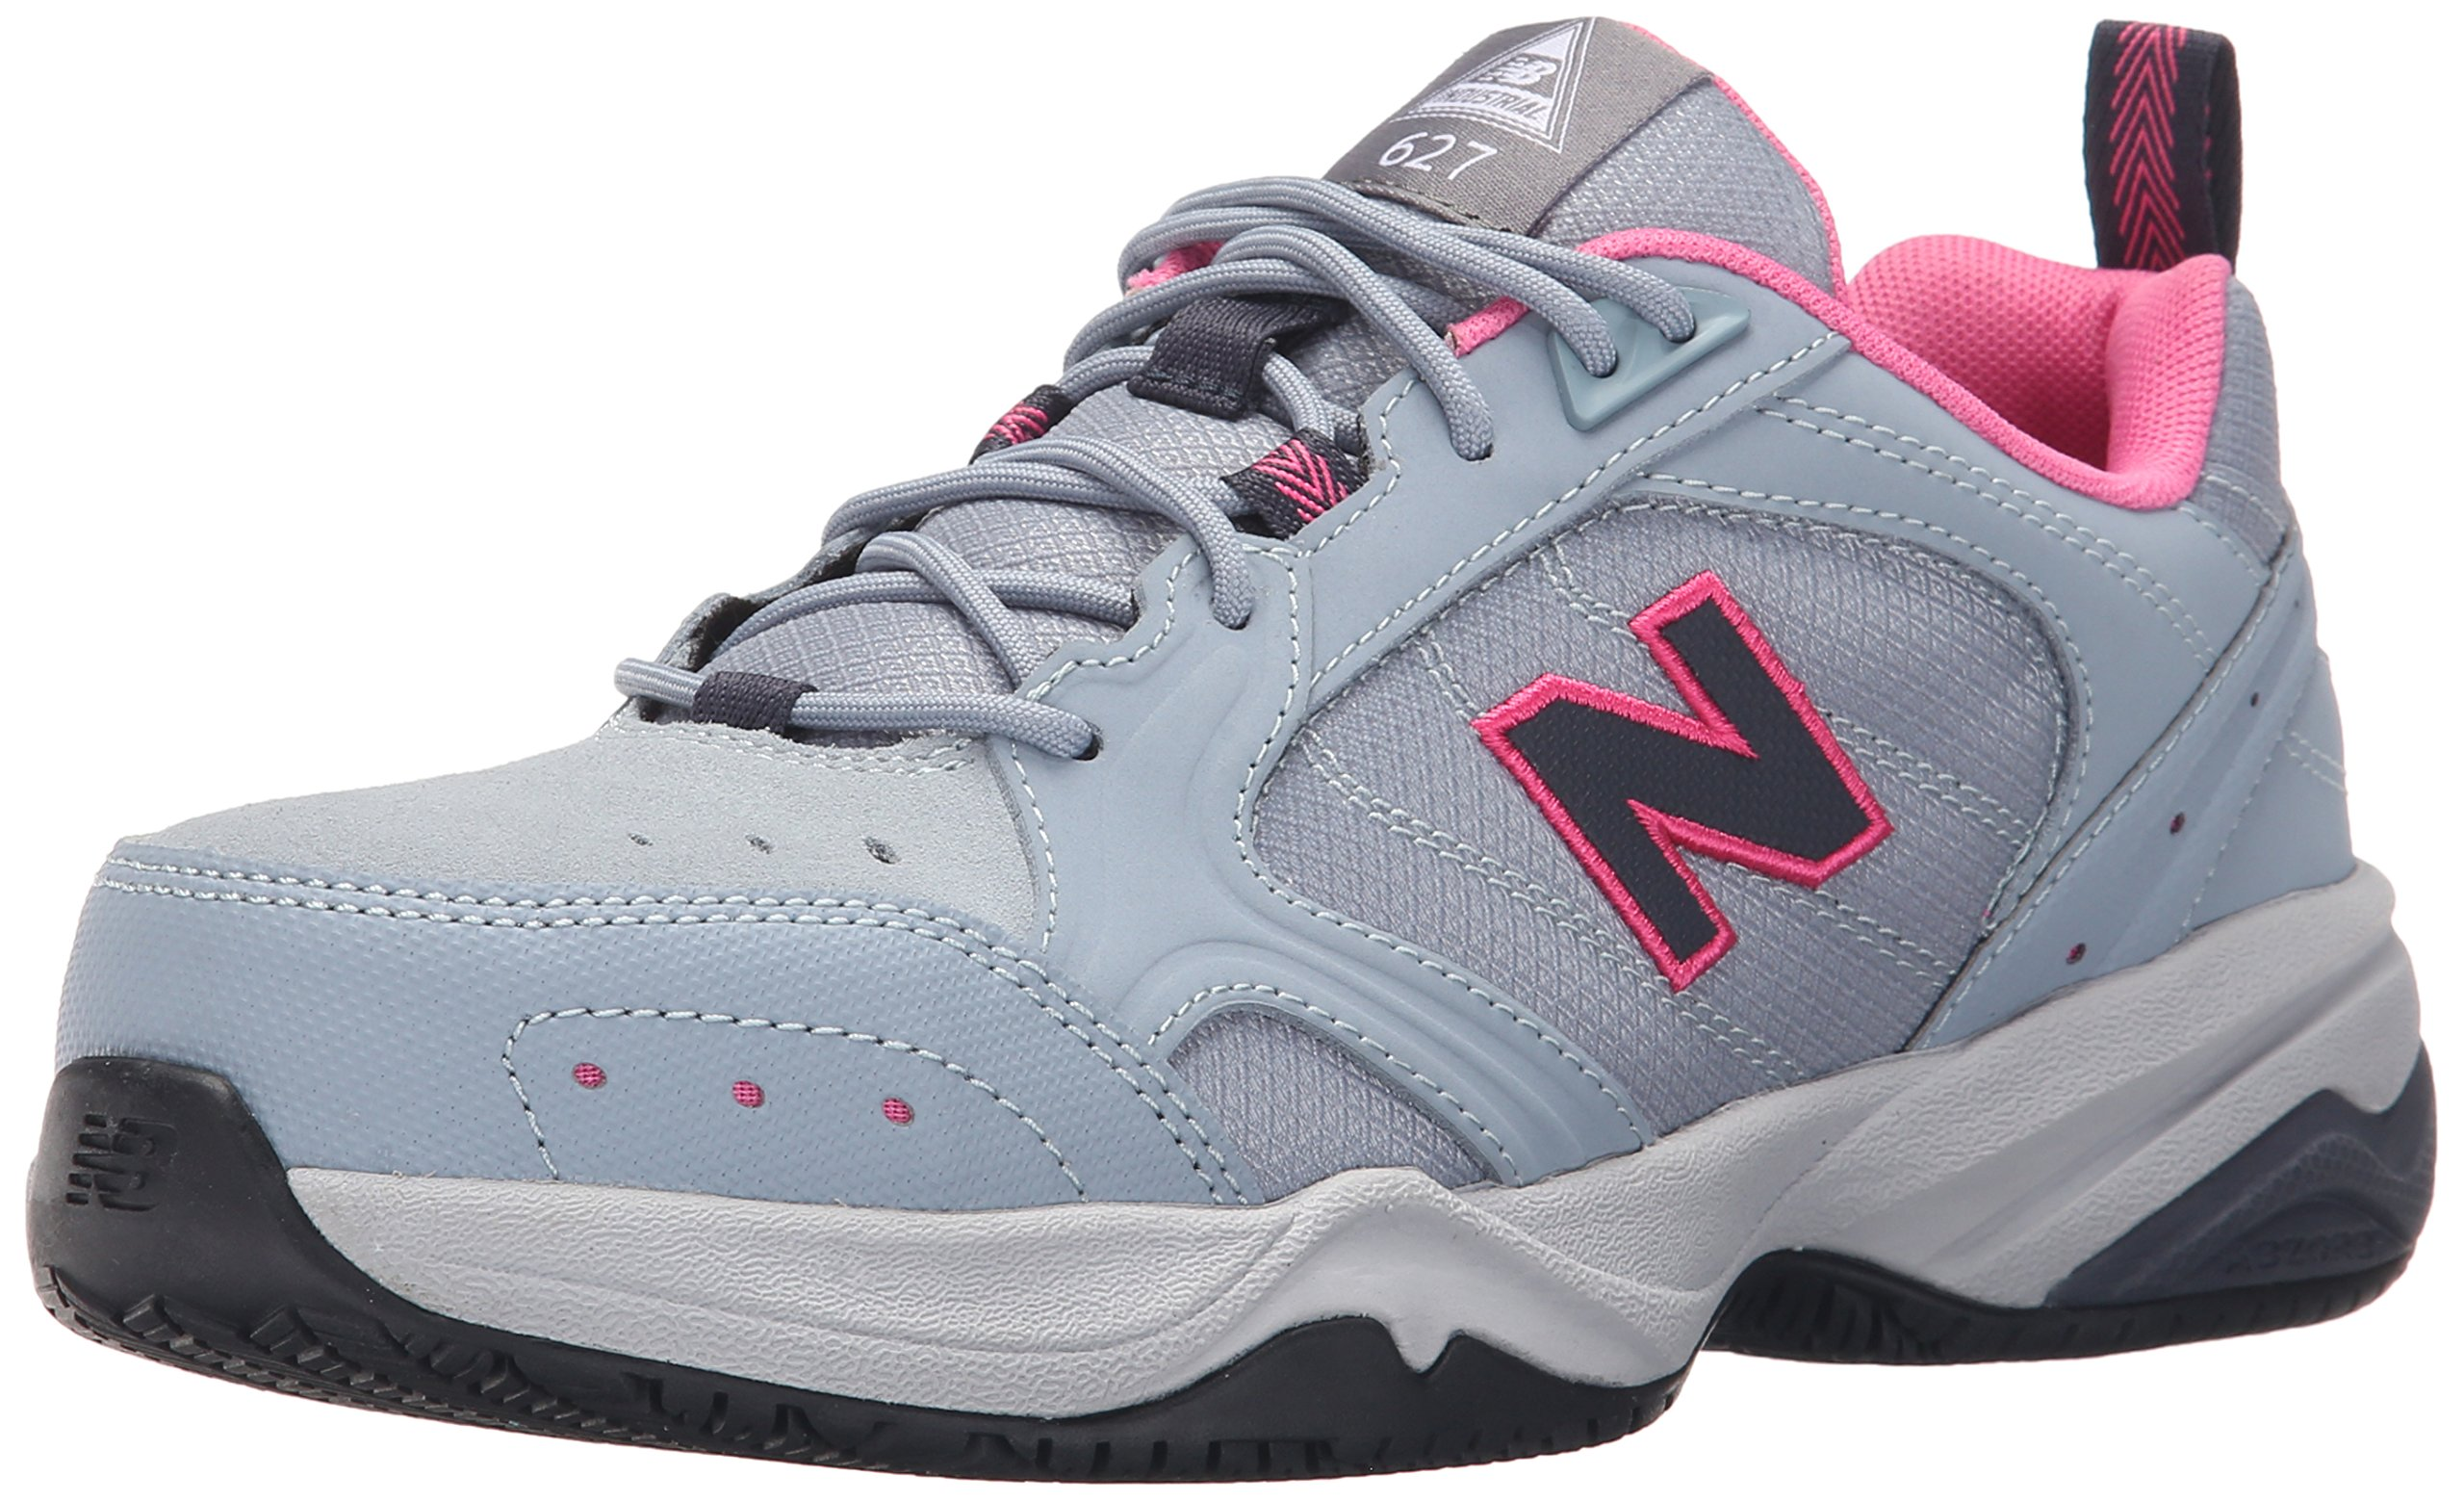 New Balance Women's WID627V1 Steel Toe Training Work Shoe,Light Grey/Pink,8 B US by New Balance (Image #1)